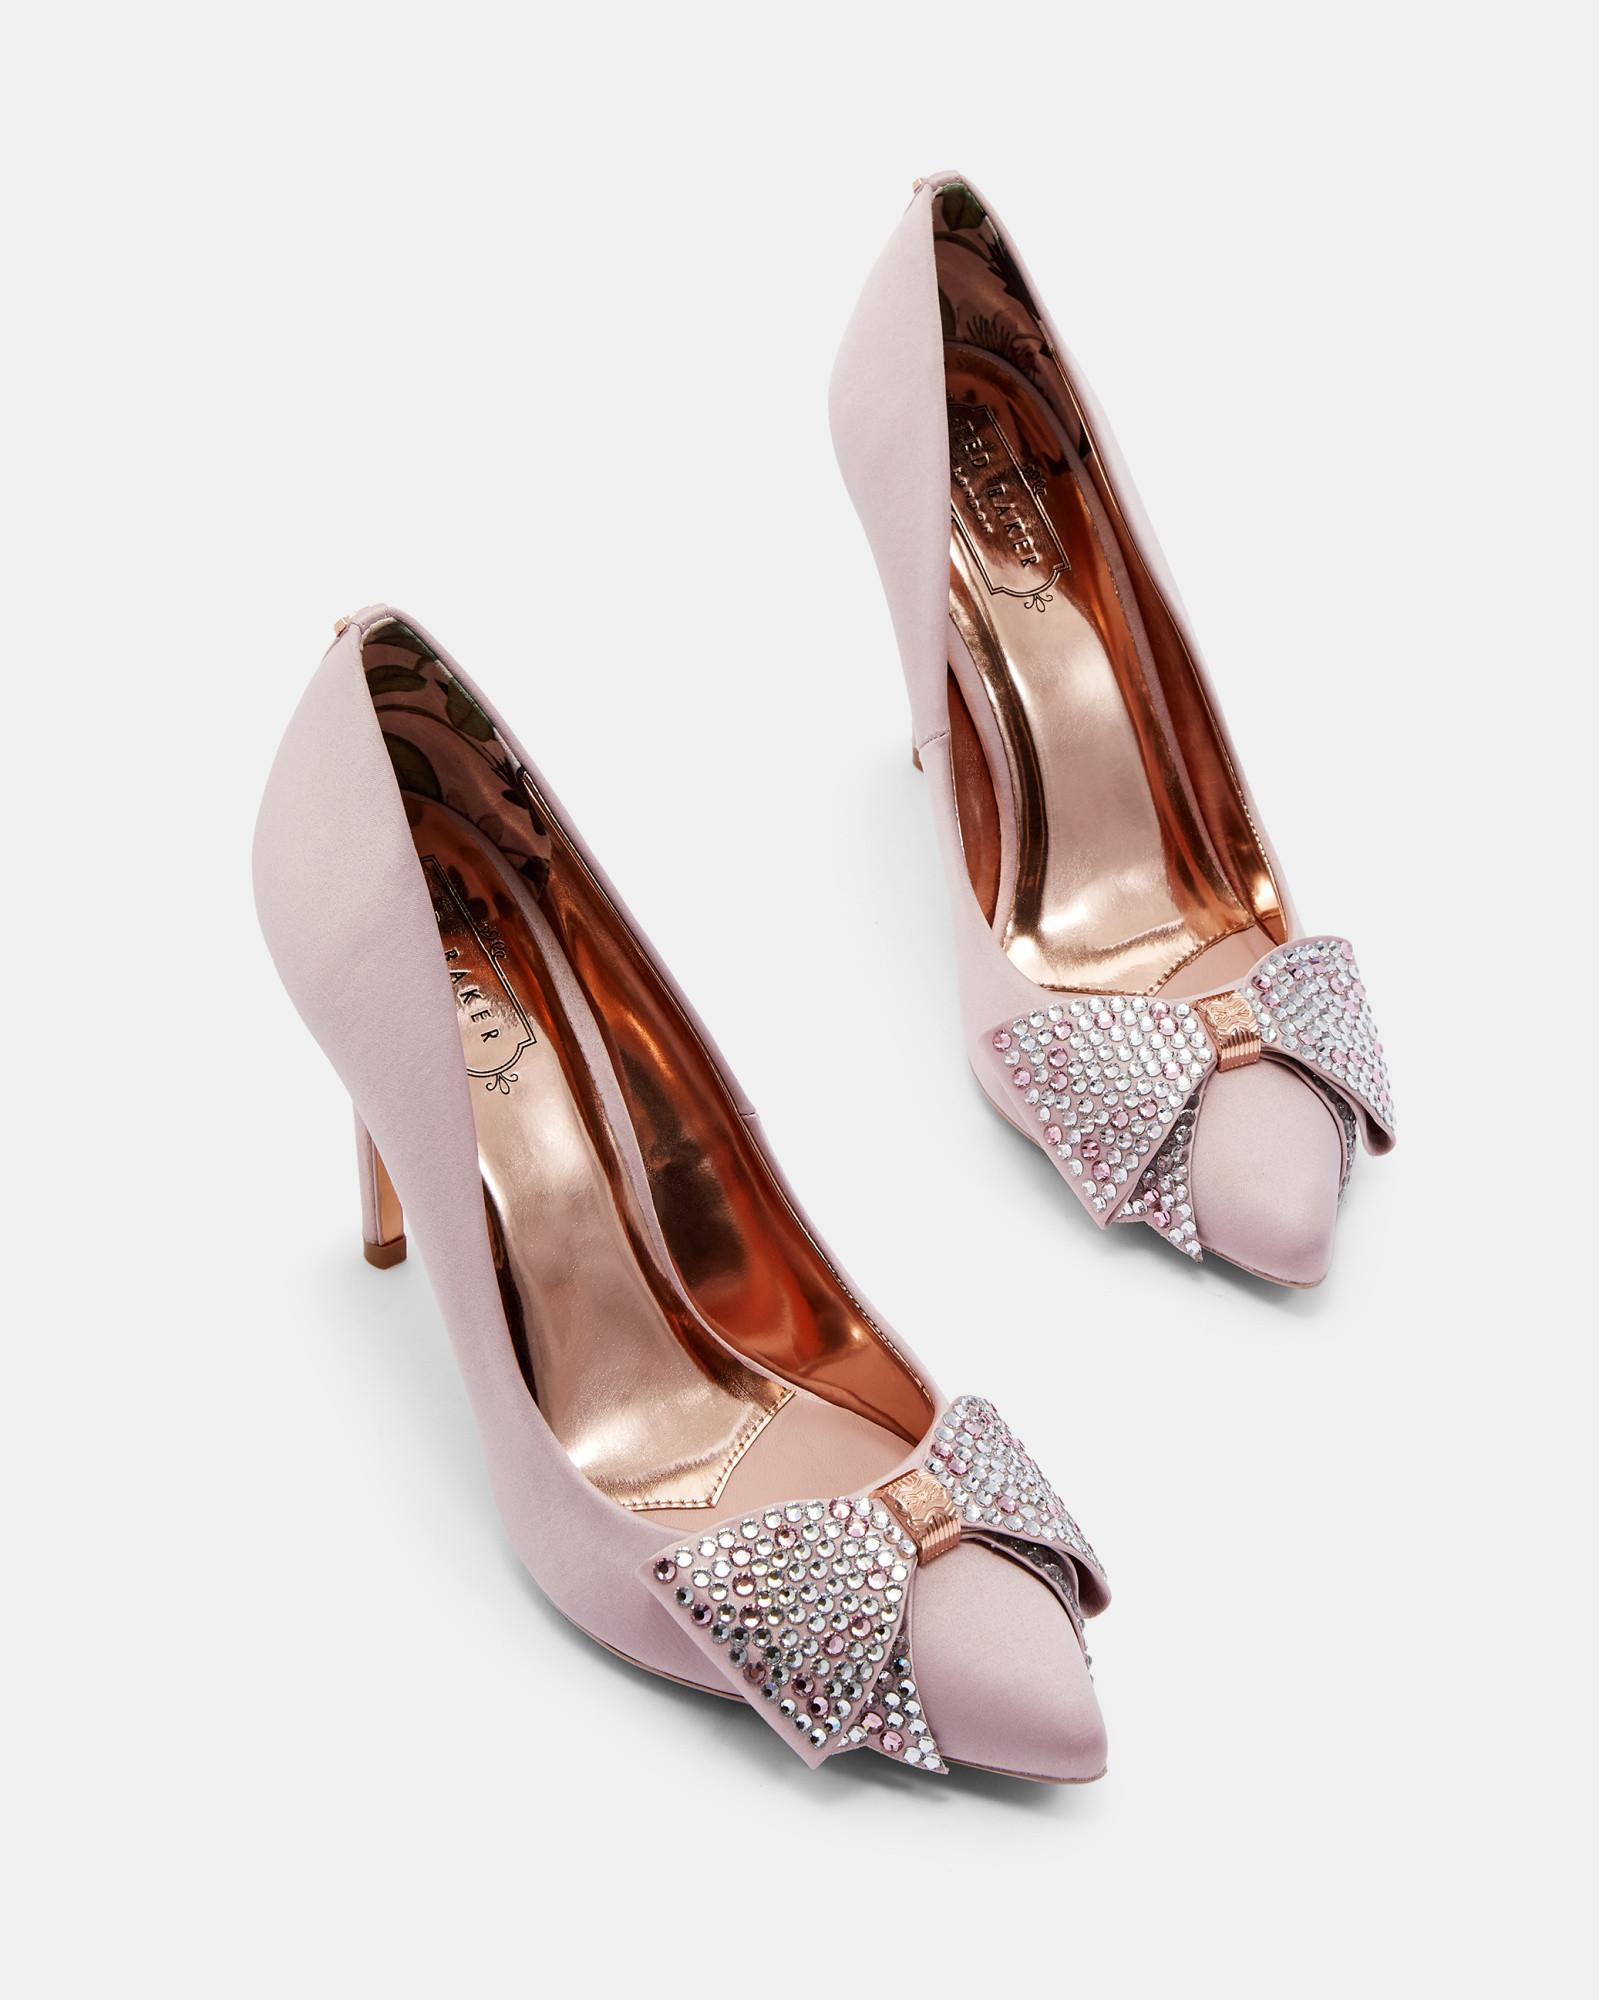 71cc1326c06 Lyst - Ted Baker Bow Detail Courts in Pink